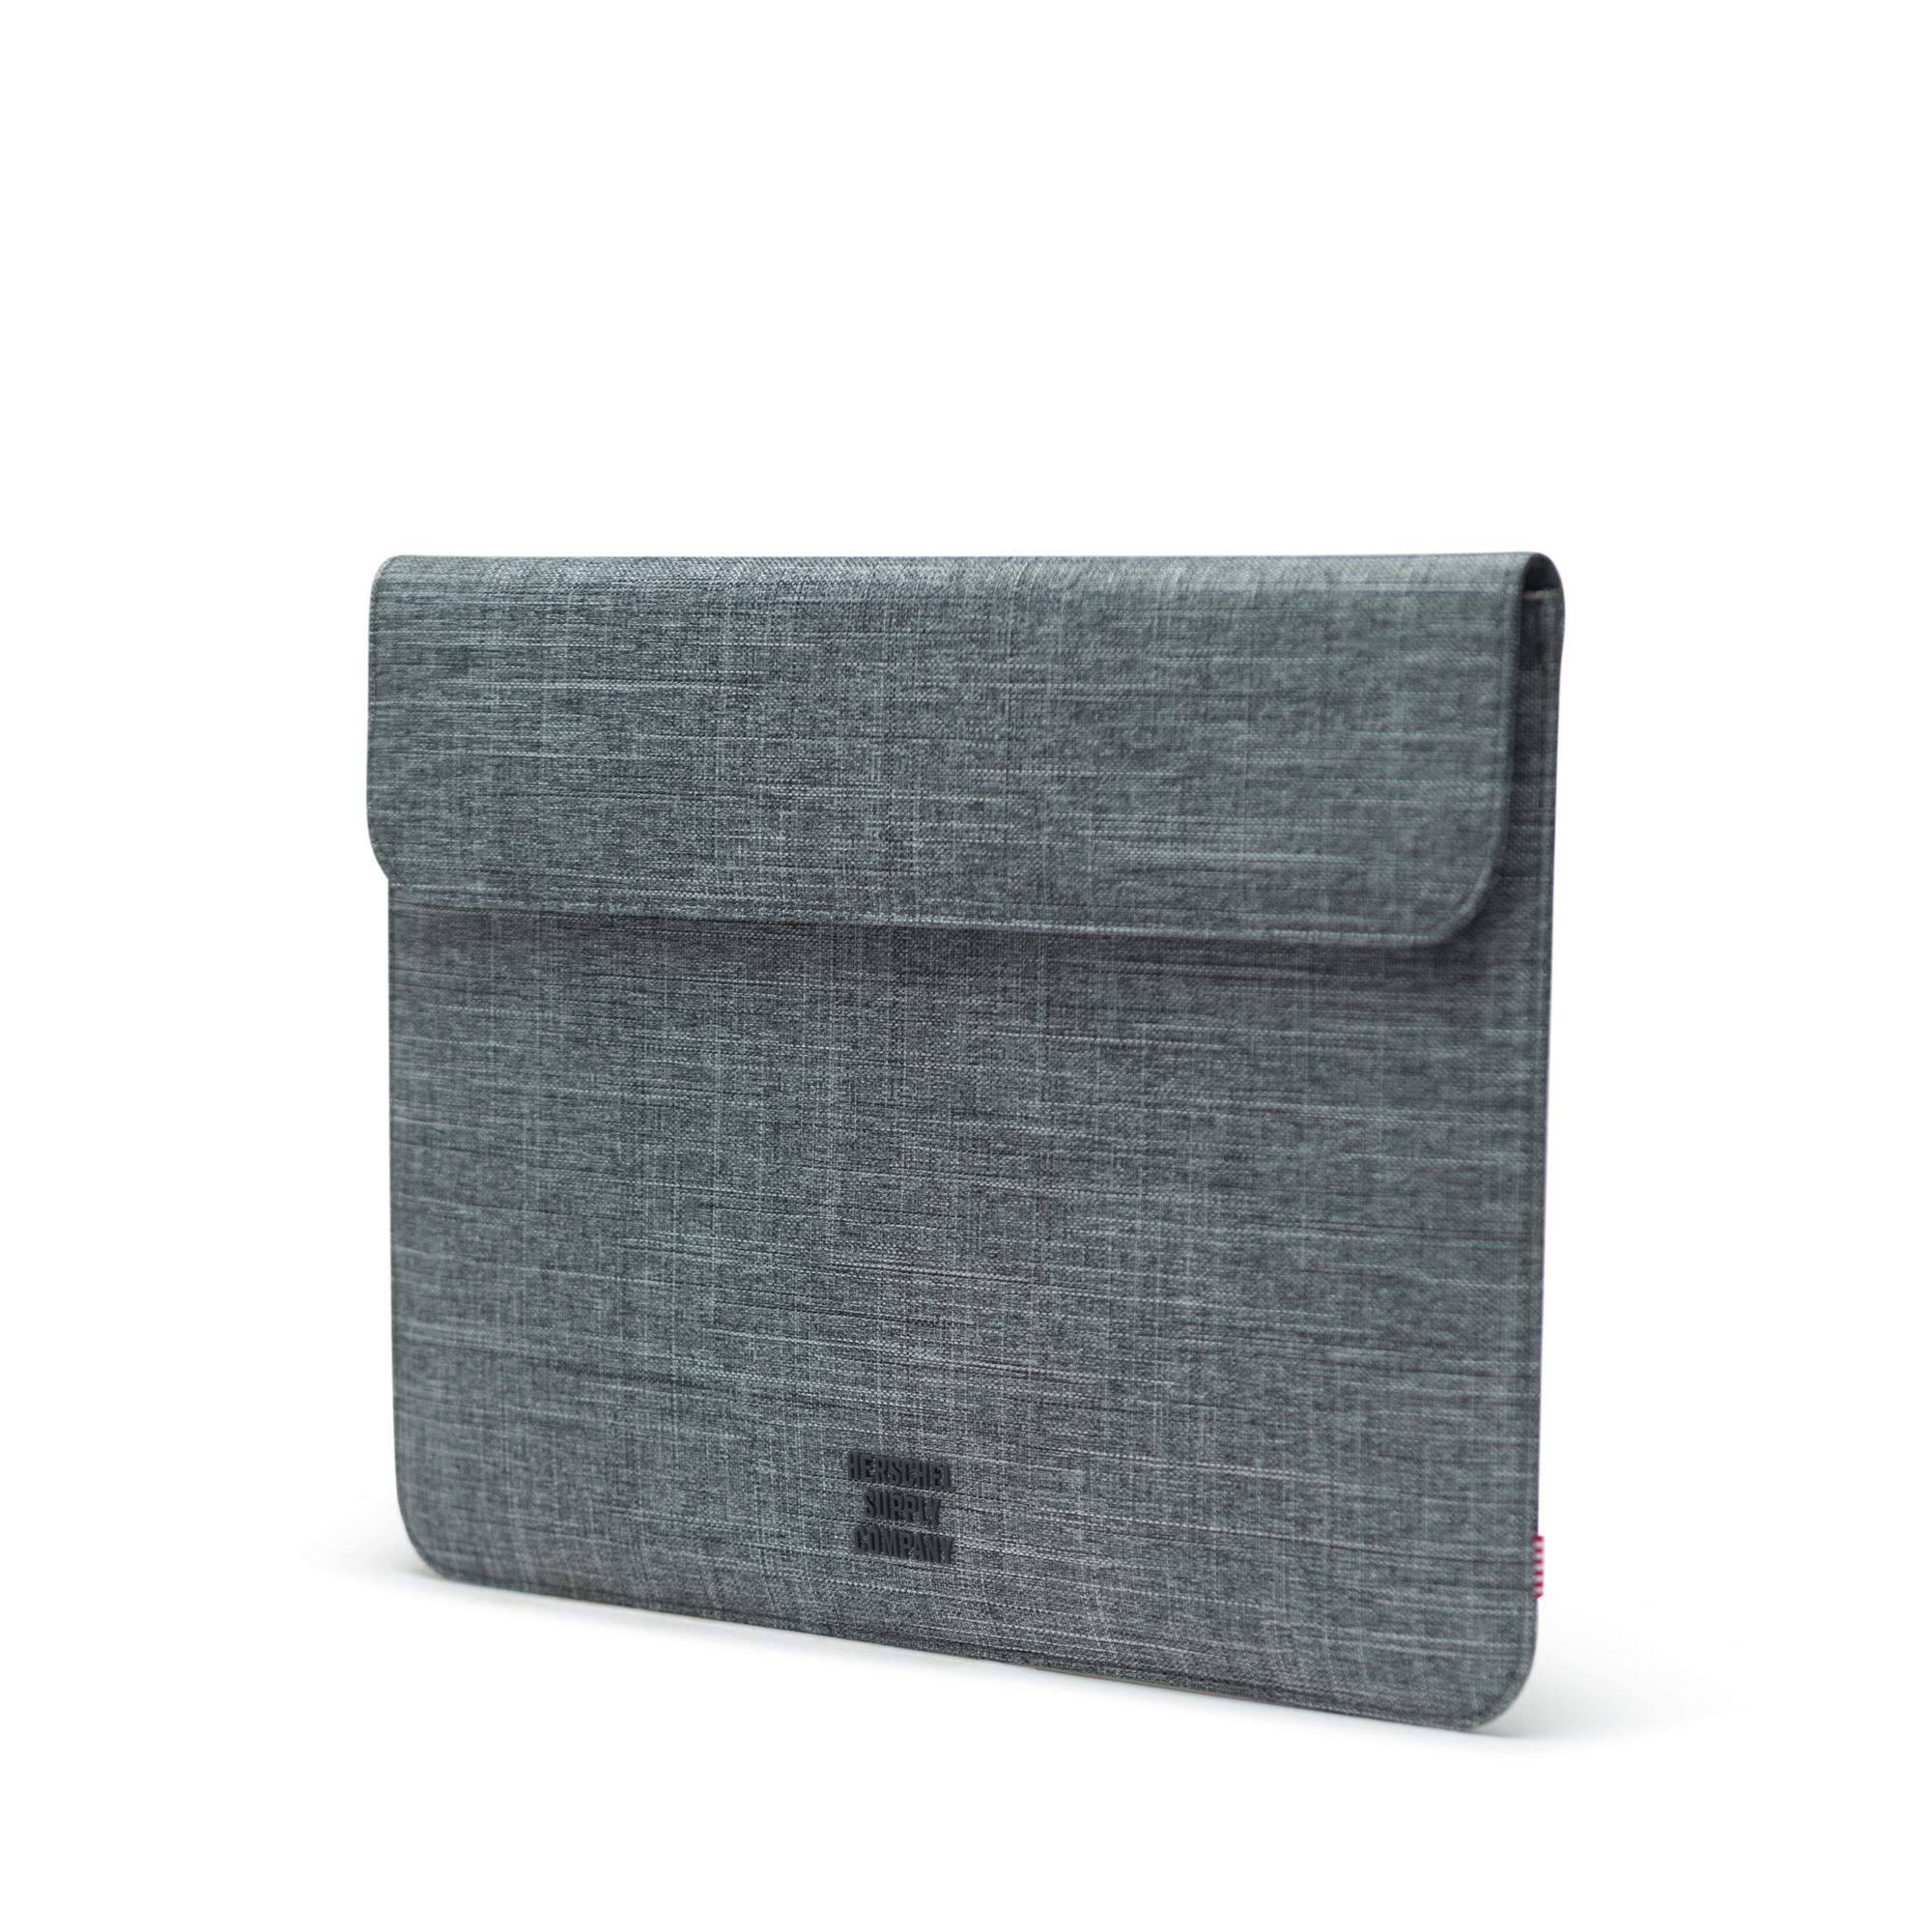 3f82481f0 Laptop Sleeves | Laptop Cases | Herschel Supply Company